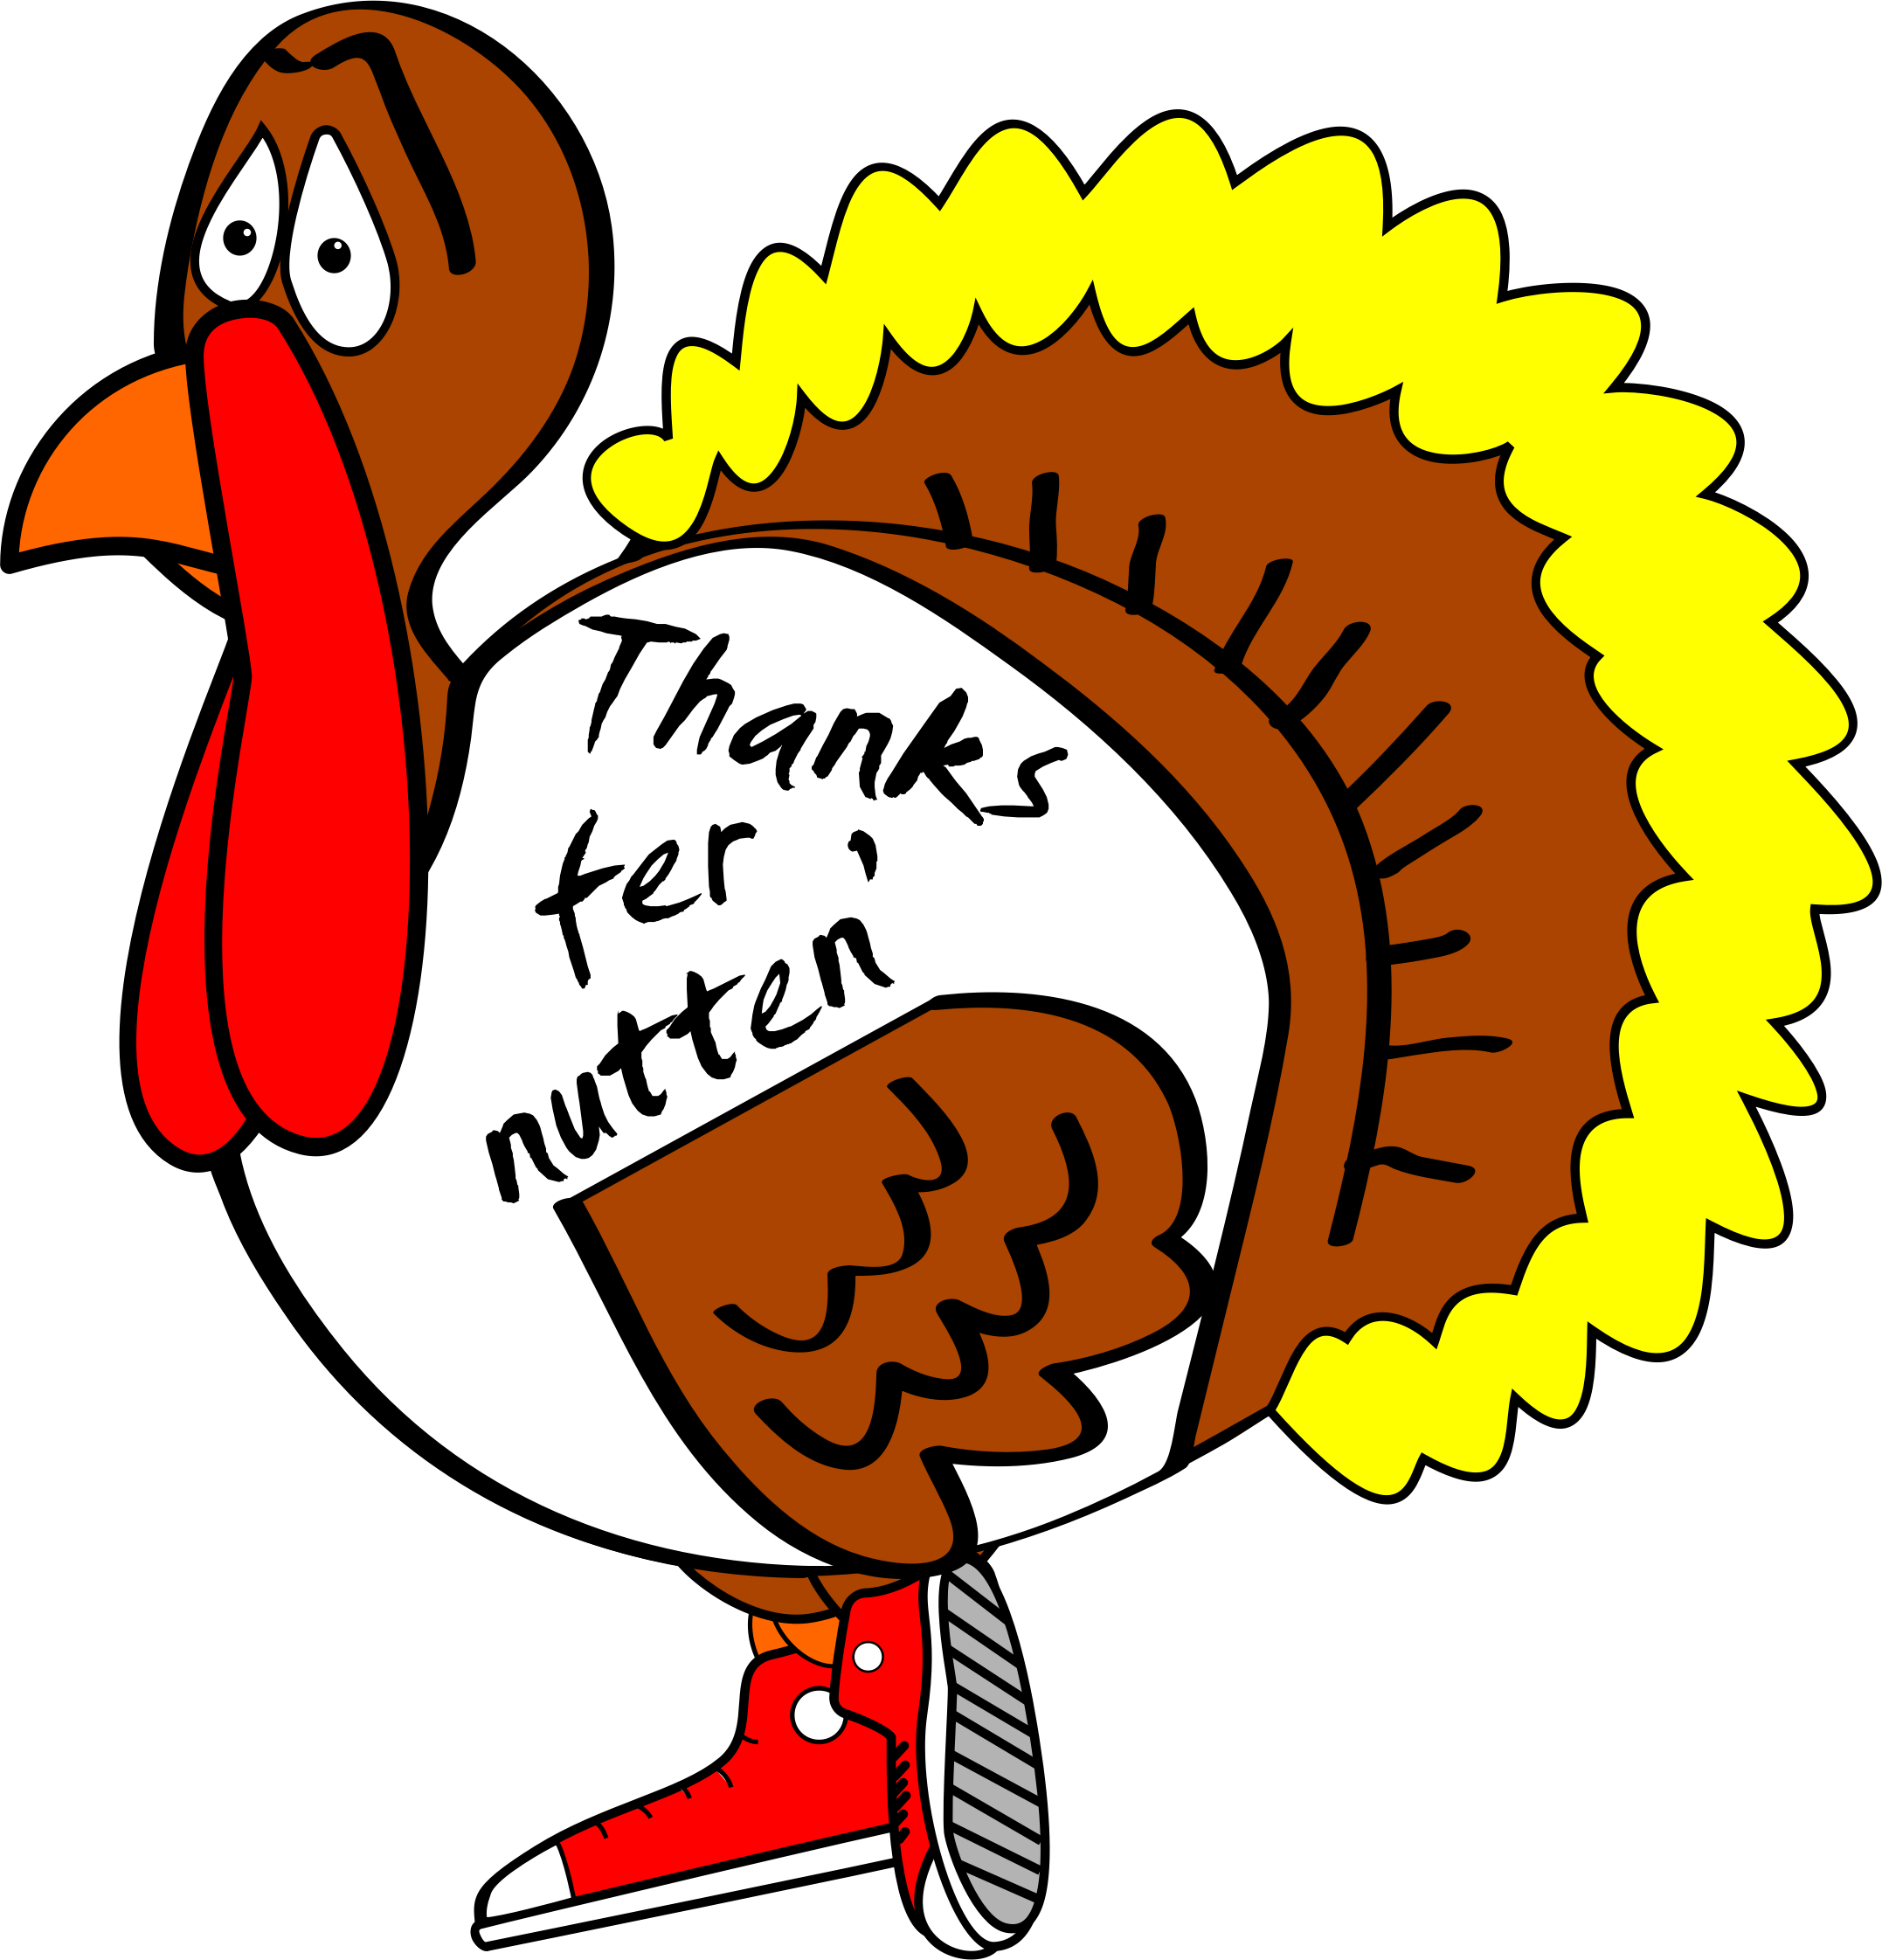 silly turkey clipart at getdrawings com free for personal use rh getdrawings com silly turkey clipart funny turkey clipart black and white